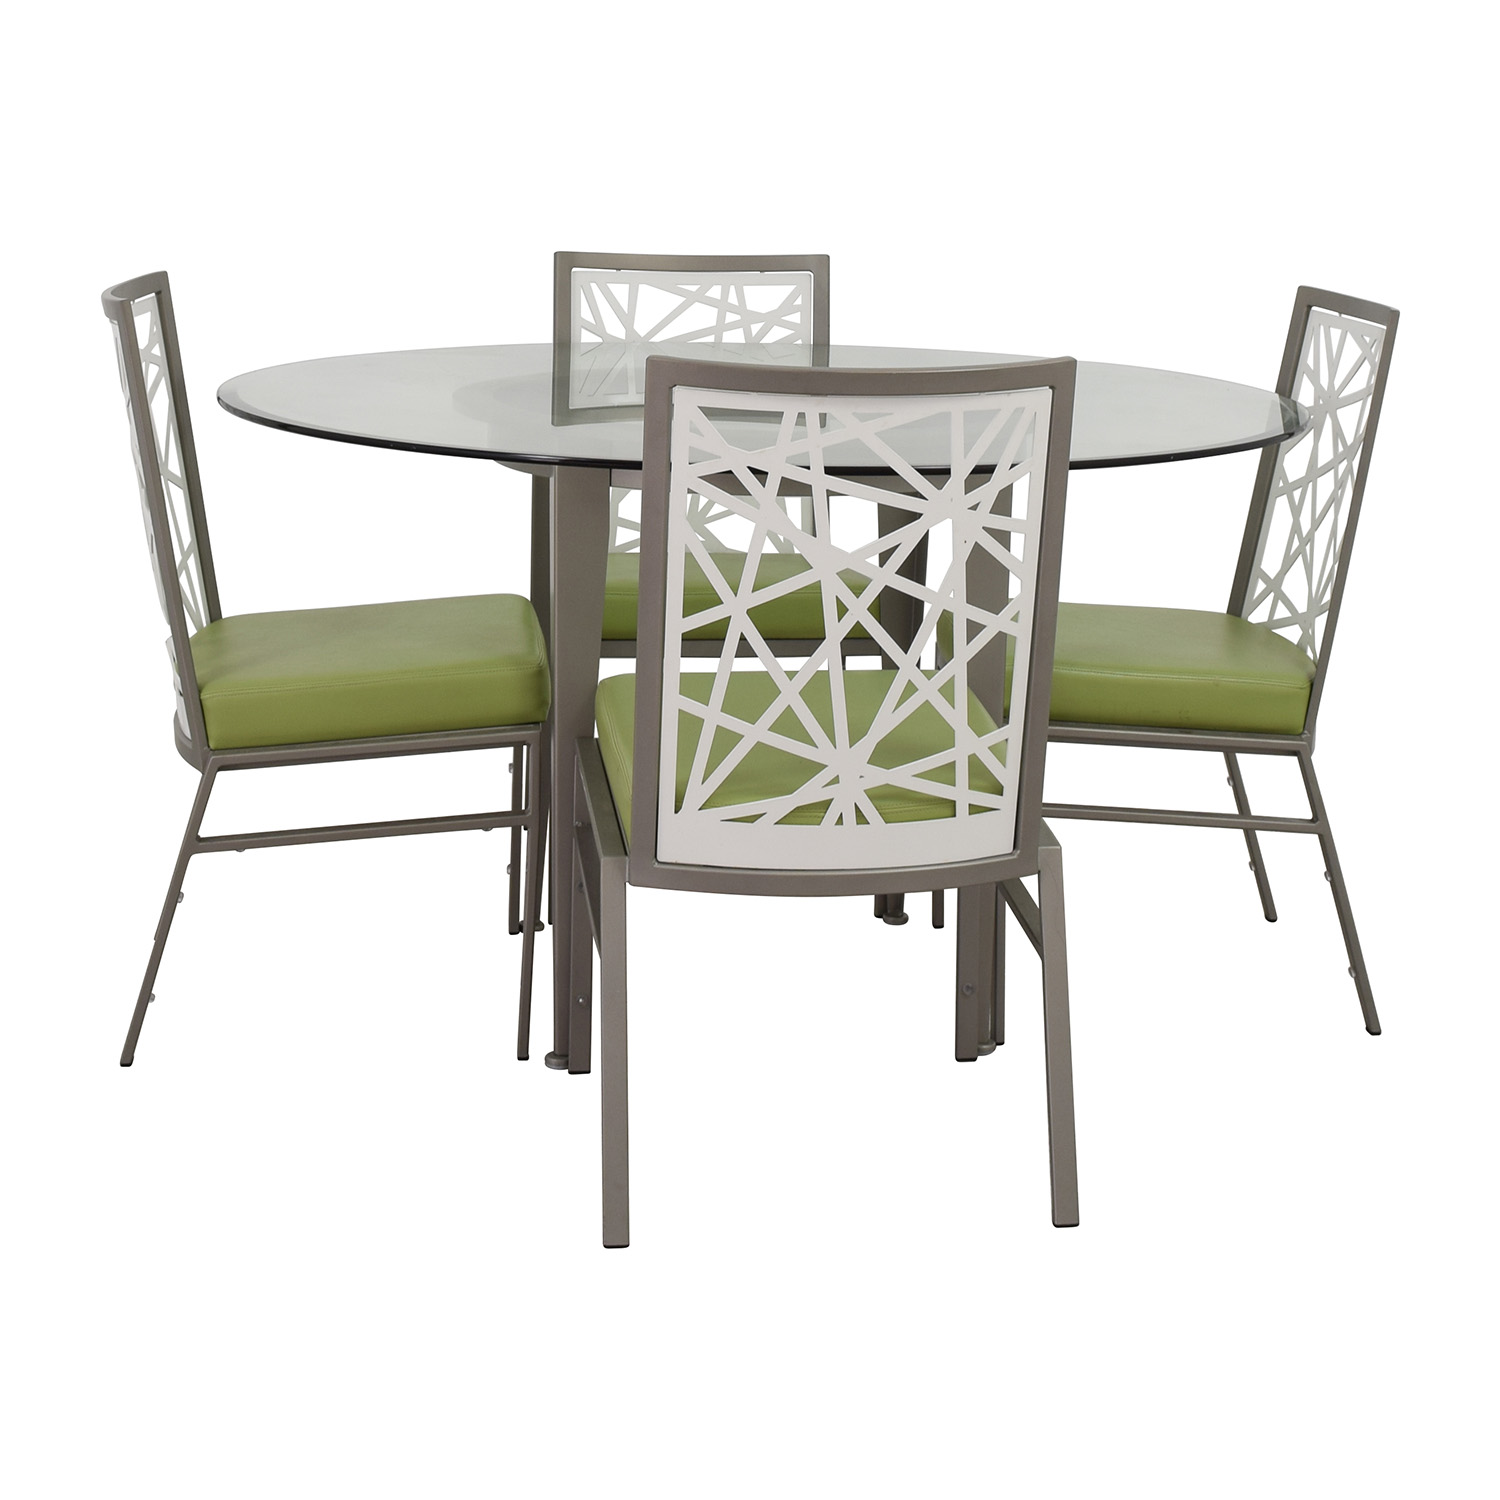 modern green dining chairs ruched chair covers 90 off bif furniture silver and